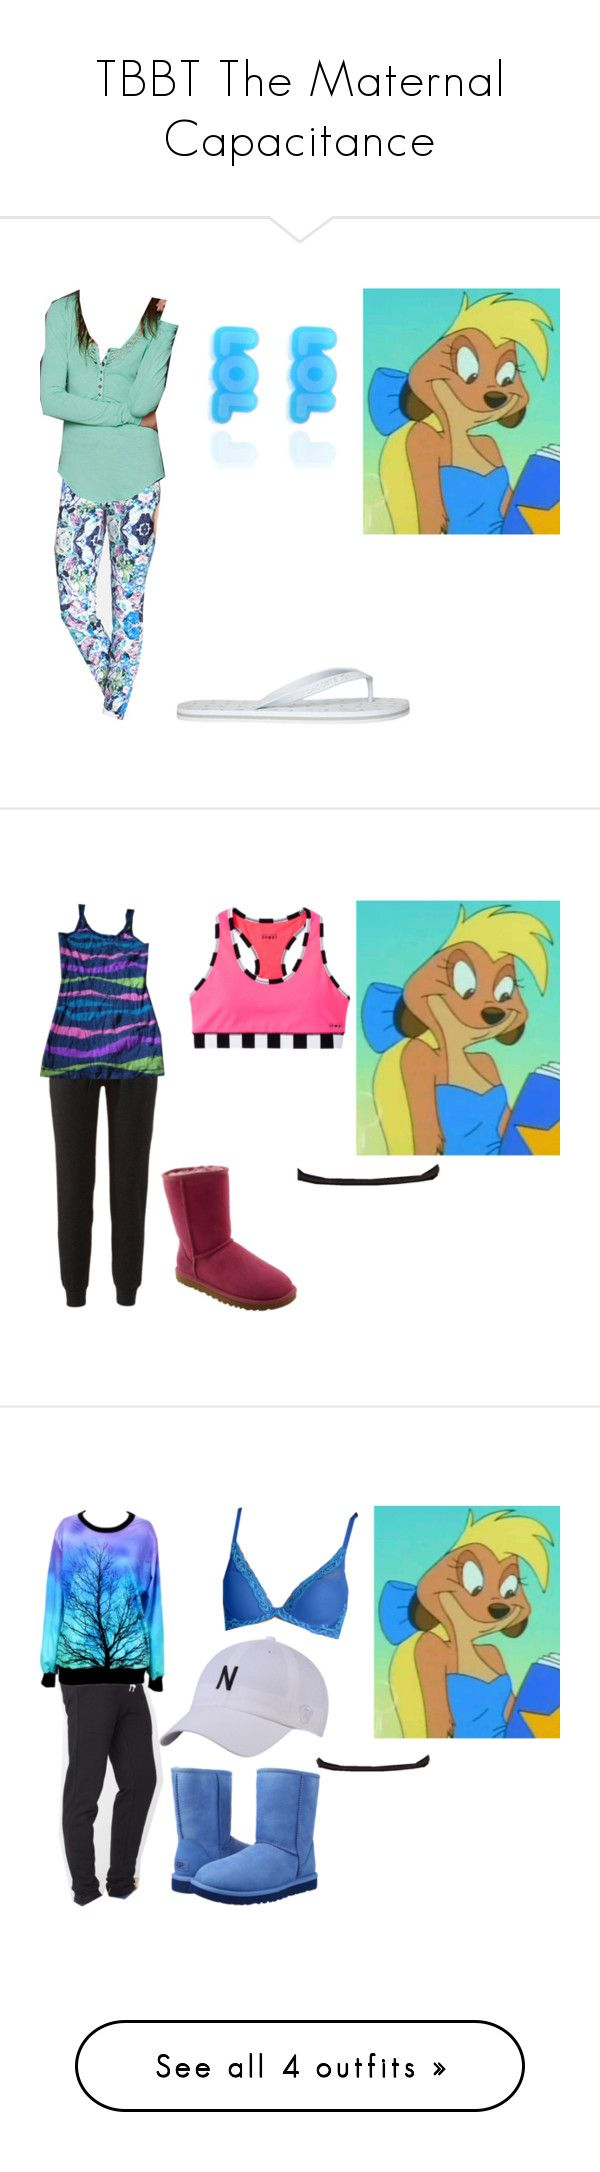 """""""TBBT The Maternal Capacitance"""" by brainyxbat ❤ liked on Polyvore featuring 7 For All Mankind, Free People, Lacoste, Punky Pins, Juicy Couture, UGG Australia, Natori, Bebe and Old Navy"""